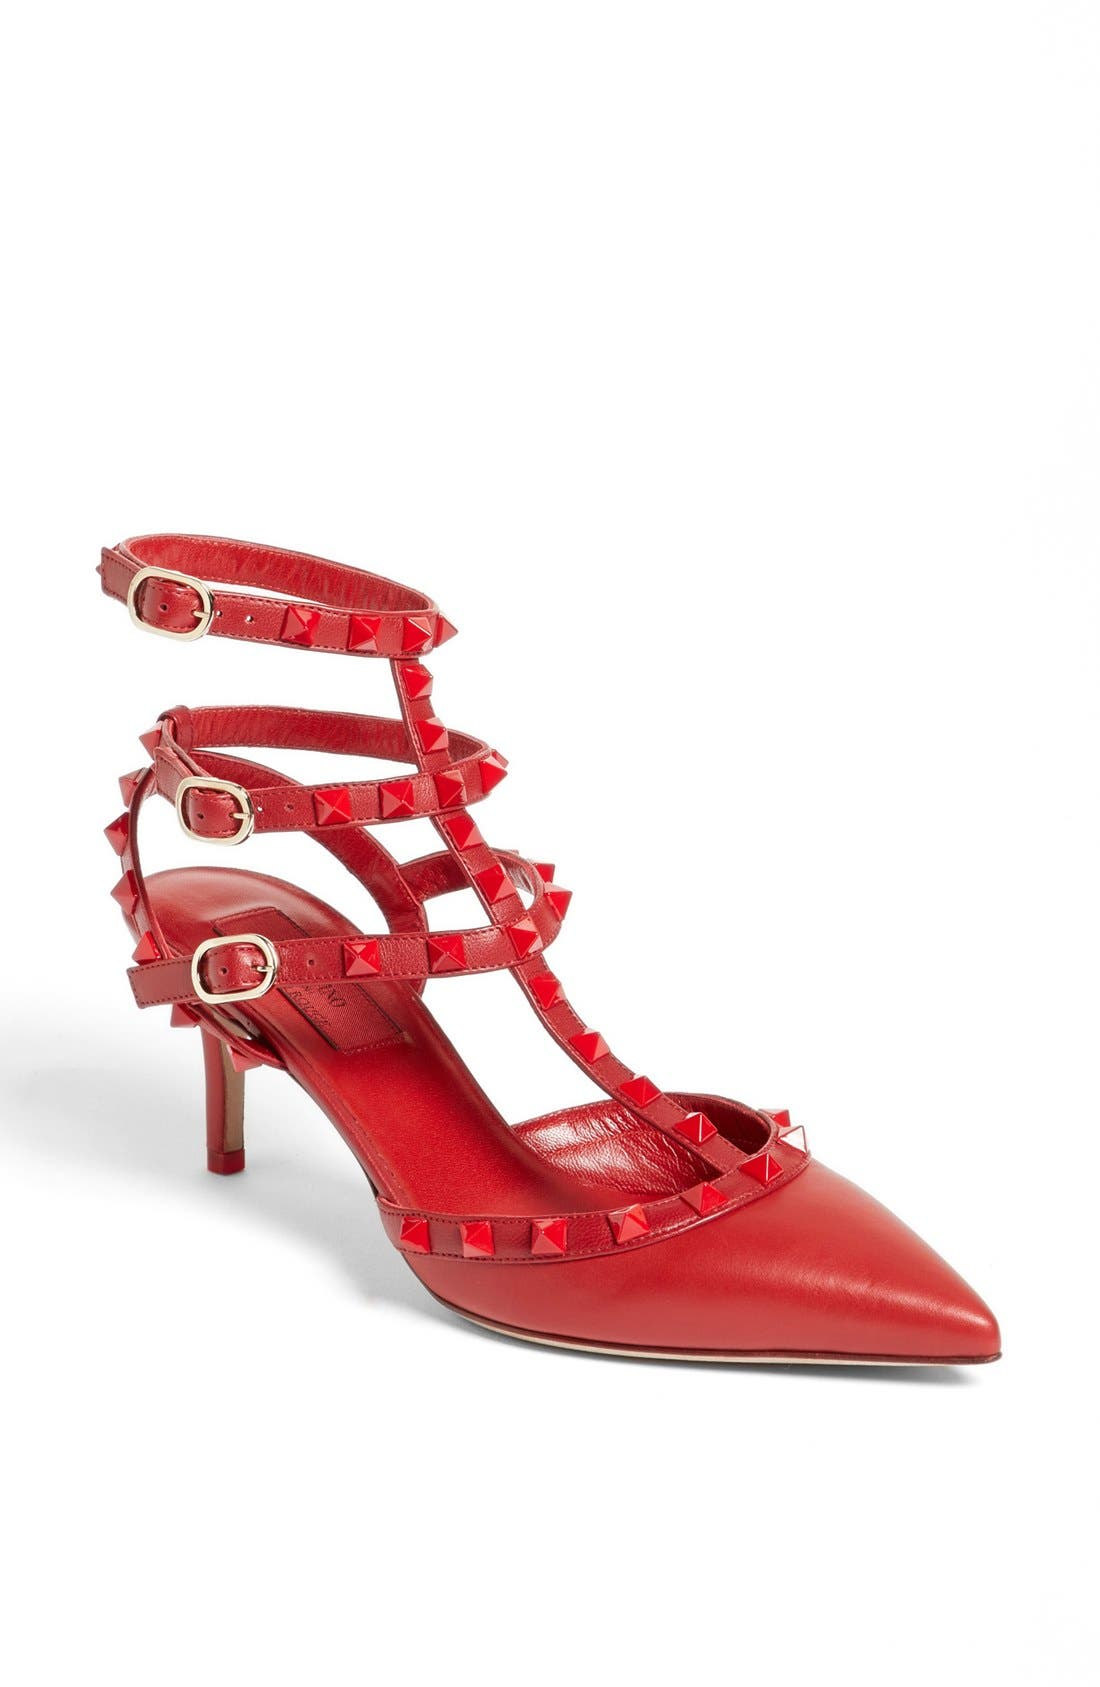 Alternate Image 1 Selected - Valentino 'Rockstud' Triple Ankle Strap Pump